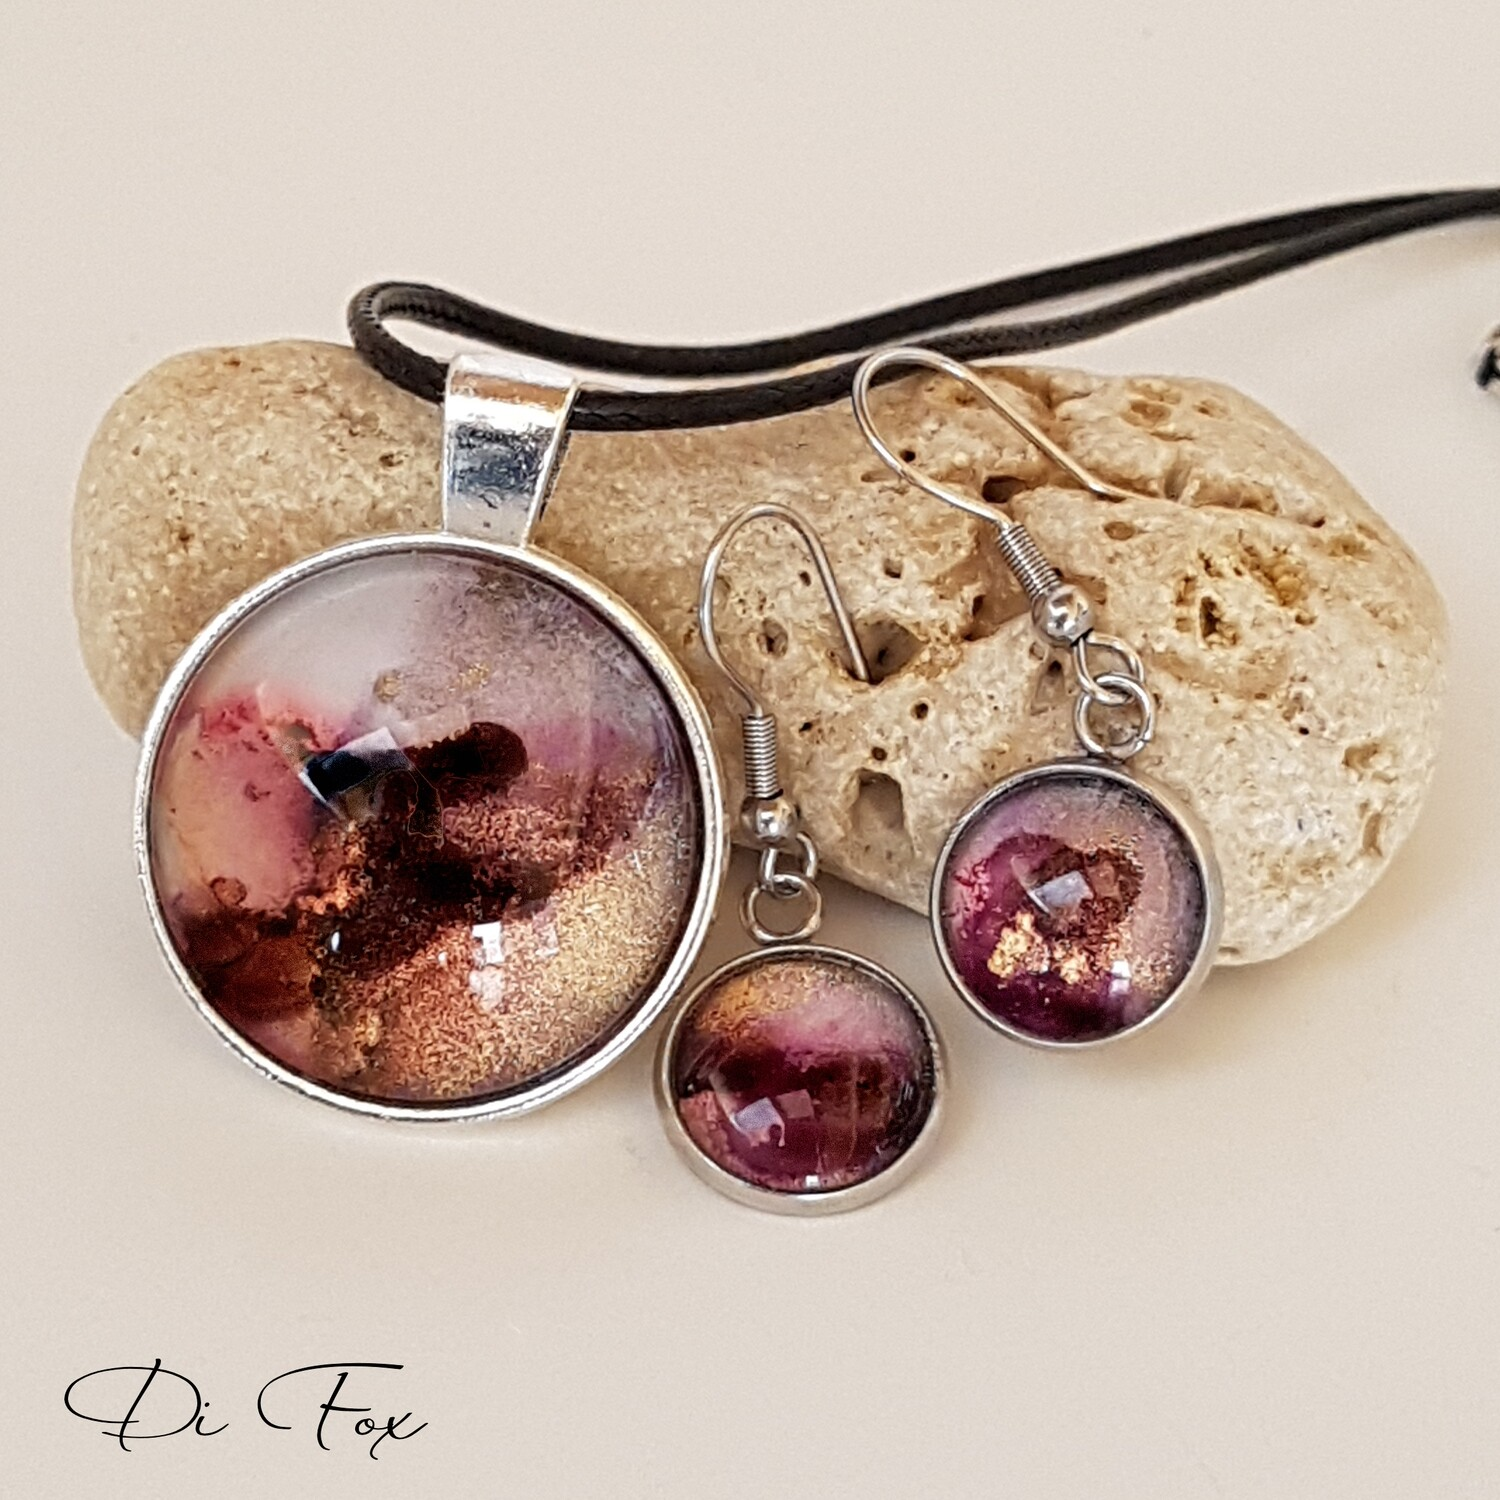 Aubergine Black Blue Pink and Gold pendant necklace and earring set